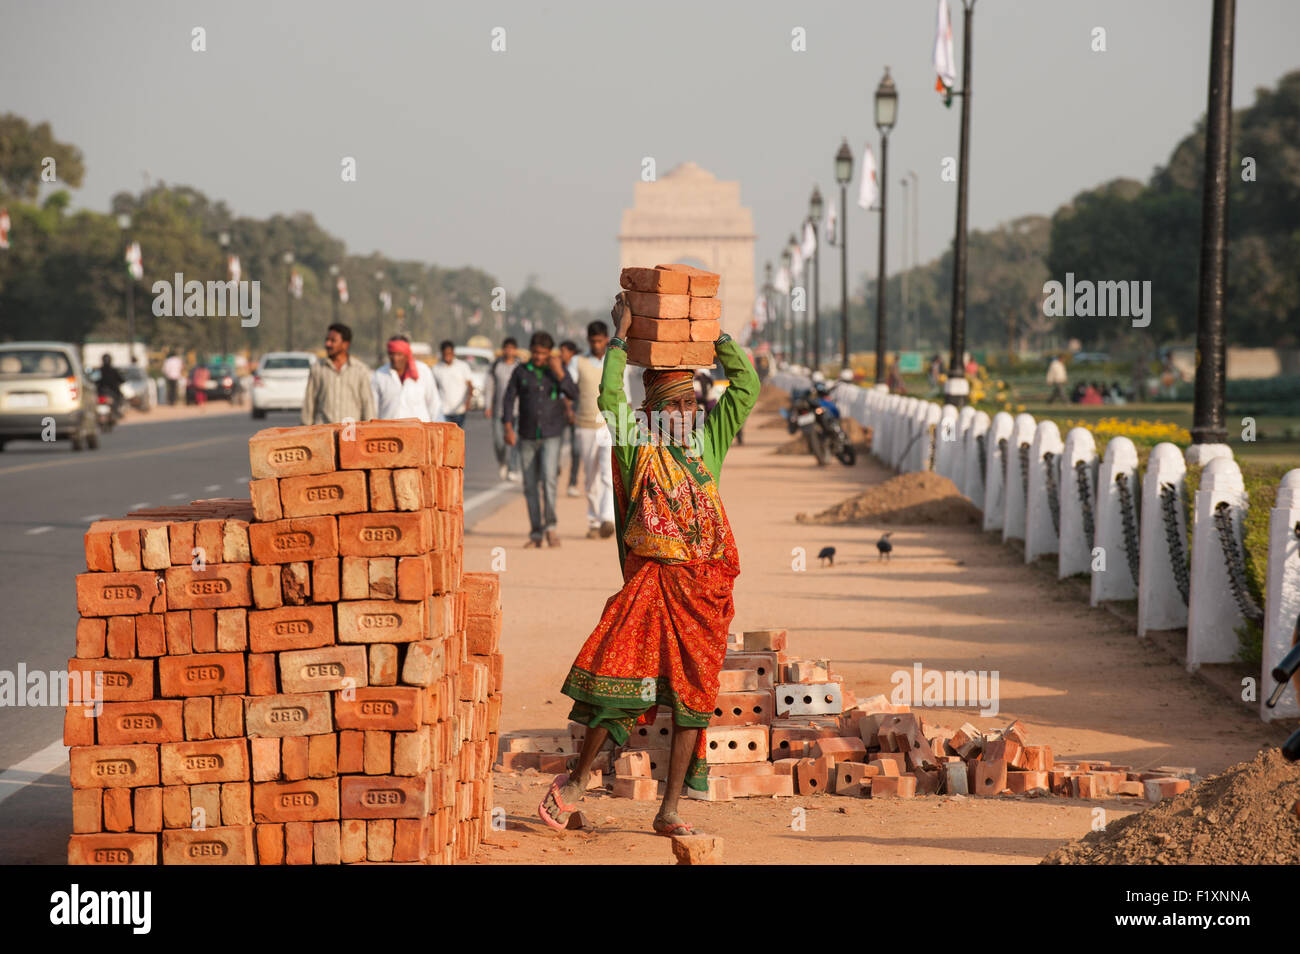 Delhi, India. A woman labourer carrying 8  eight bricks on her head from a pile of bricks at the side of the road - Stock Image